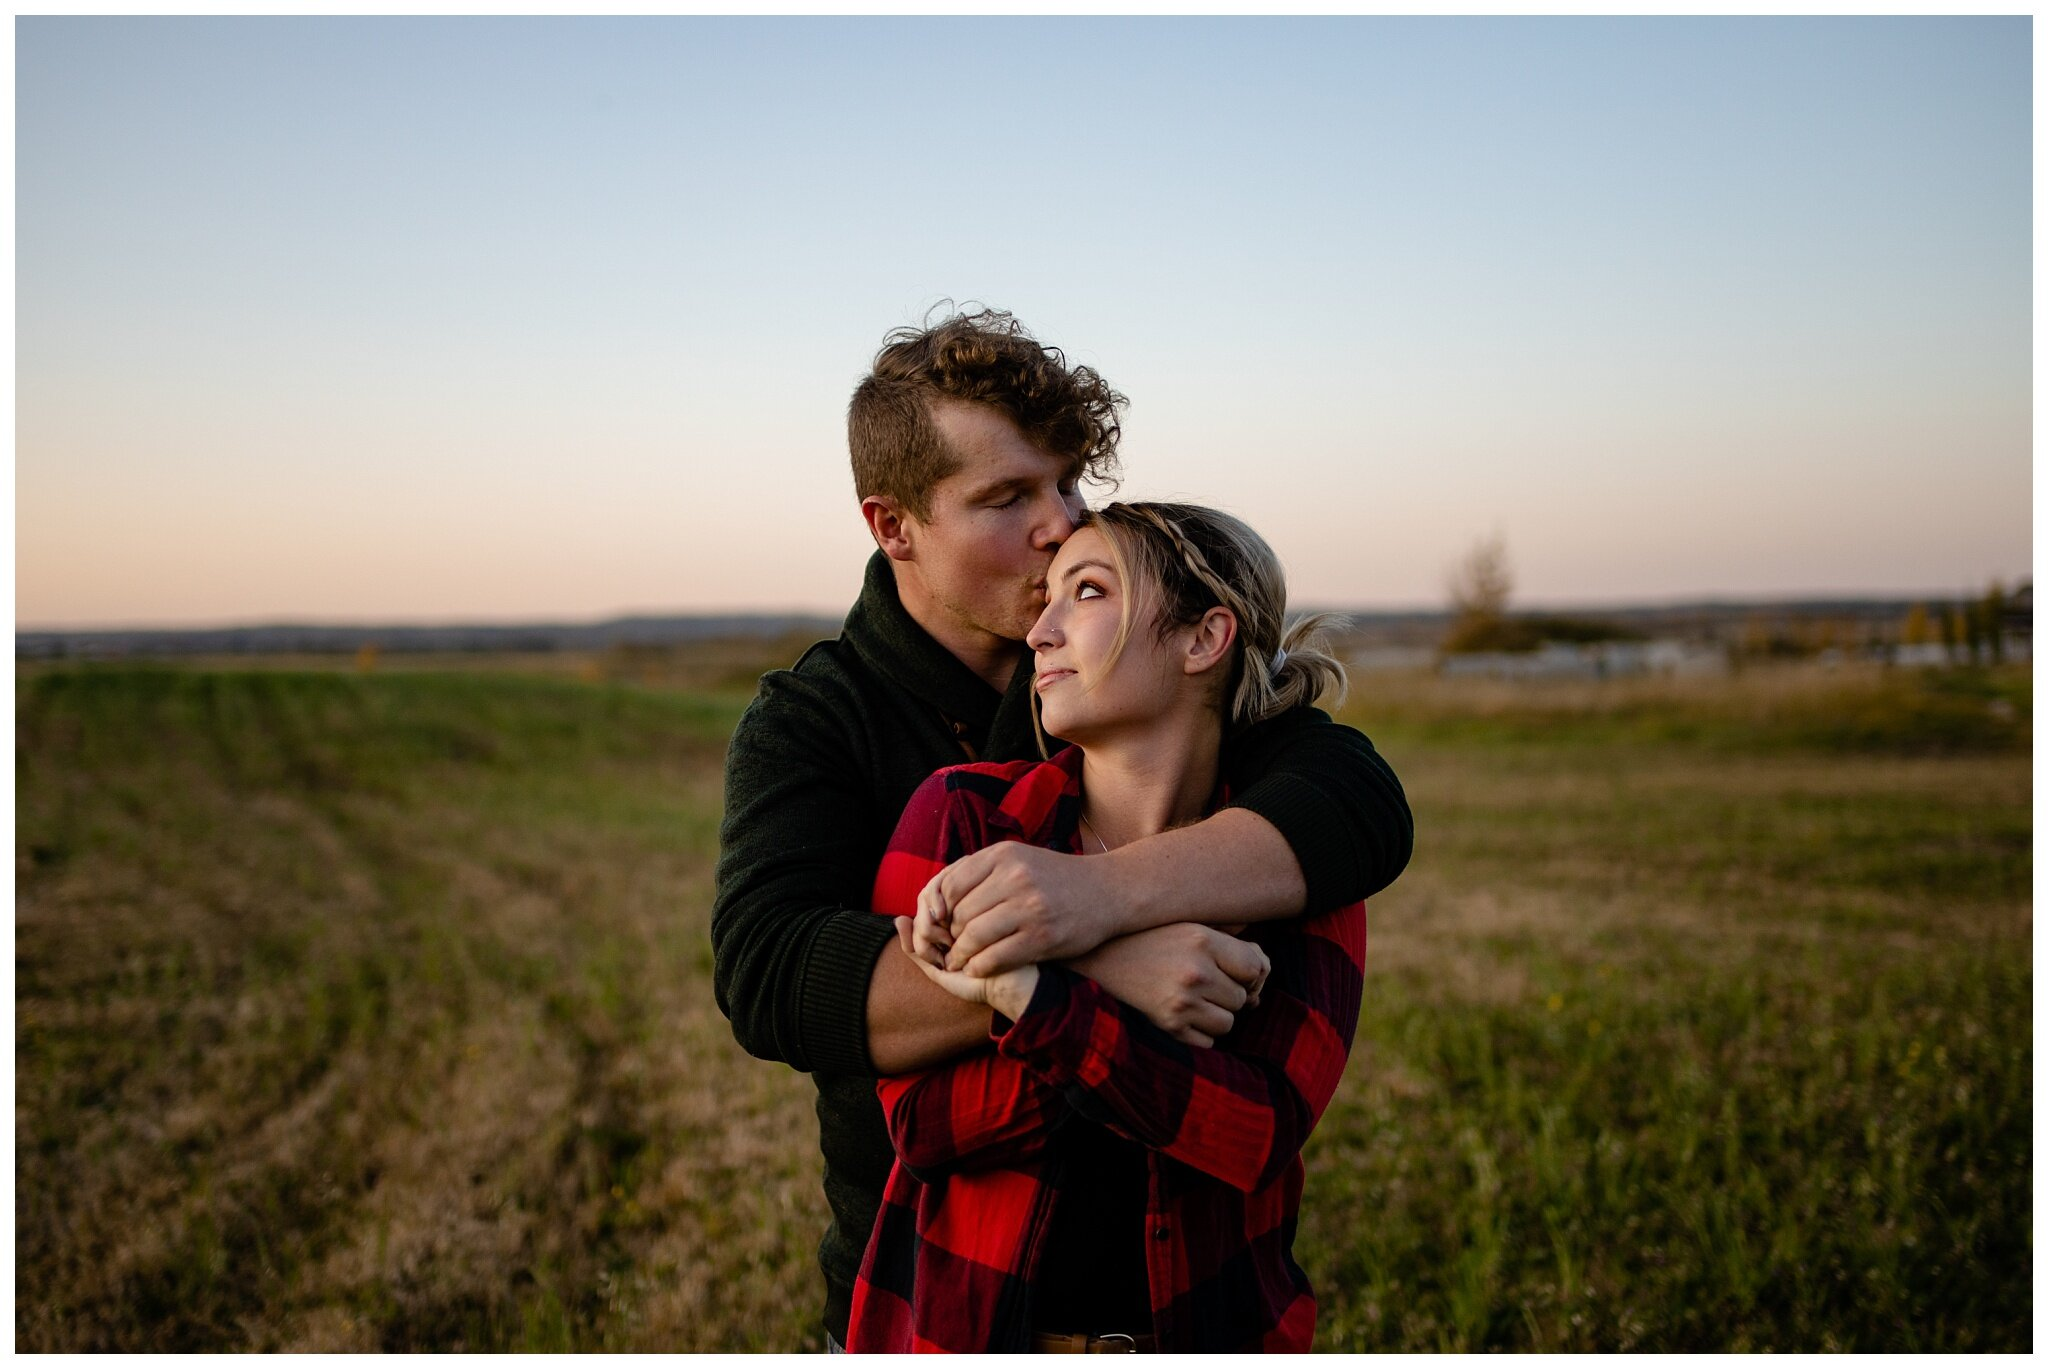 Spruce Grove Engagement Photographer Couples Connection Romantic Photography_0005.jpg